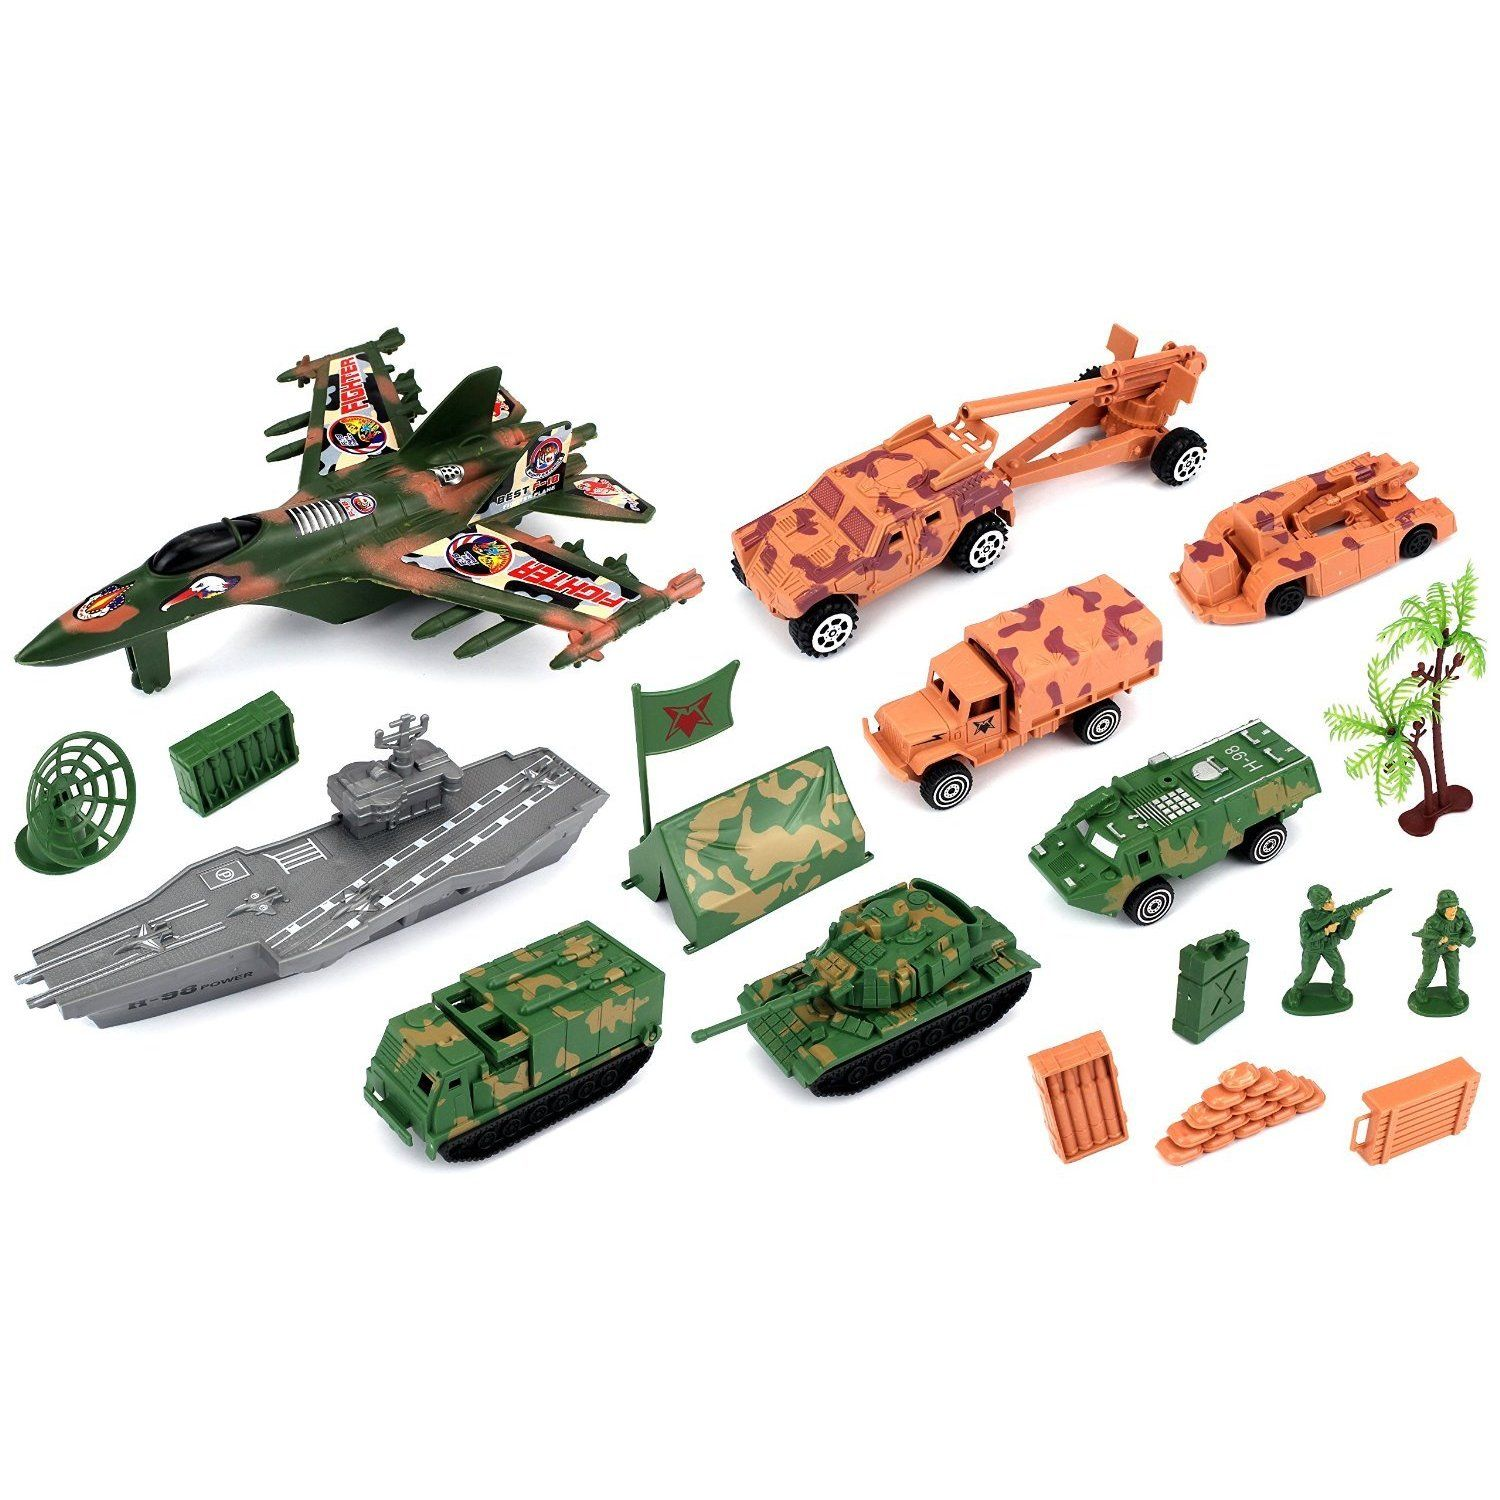 Velocity Toys Special Forces Army Territory Toy Vehicle Playset